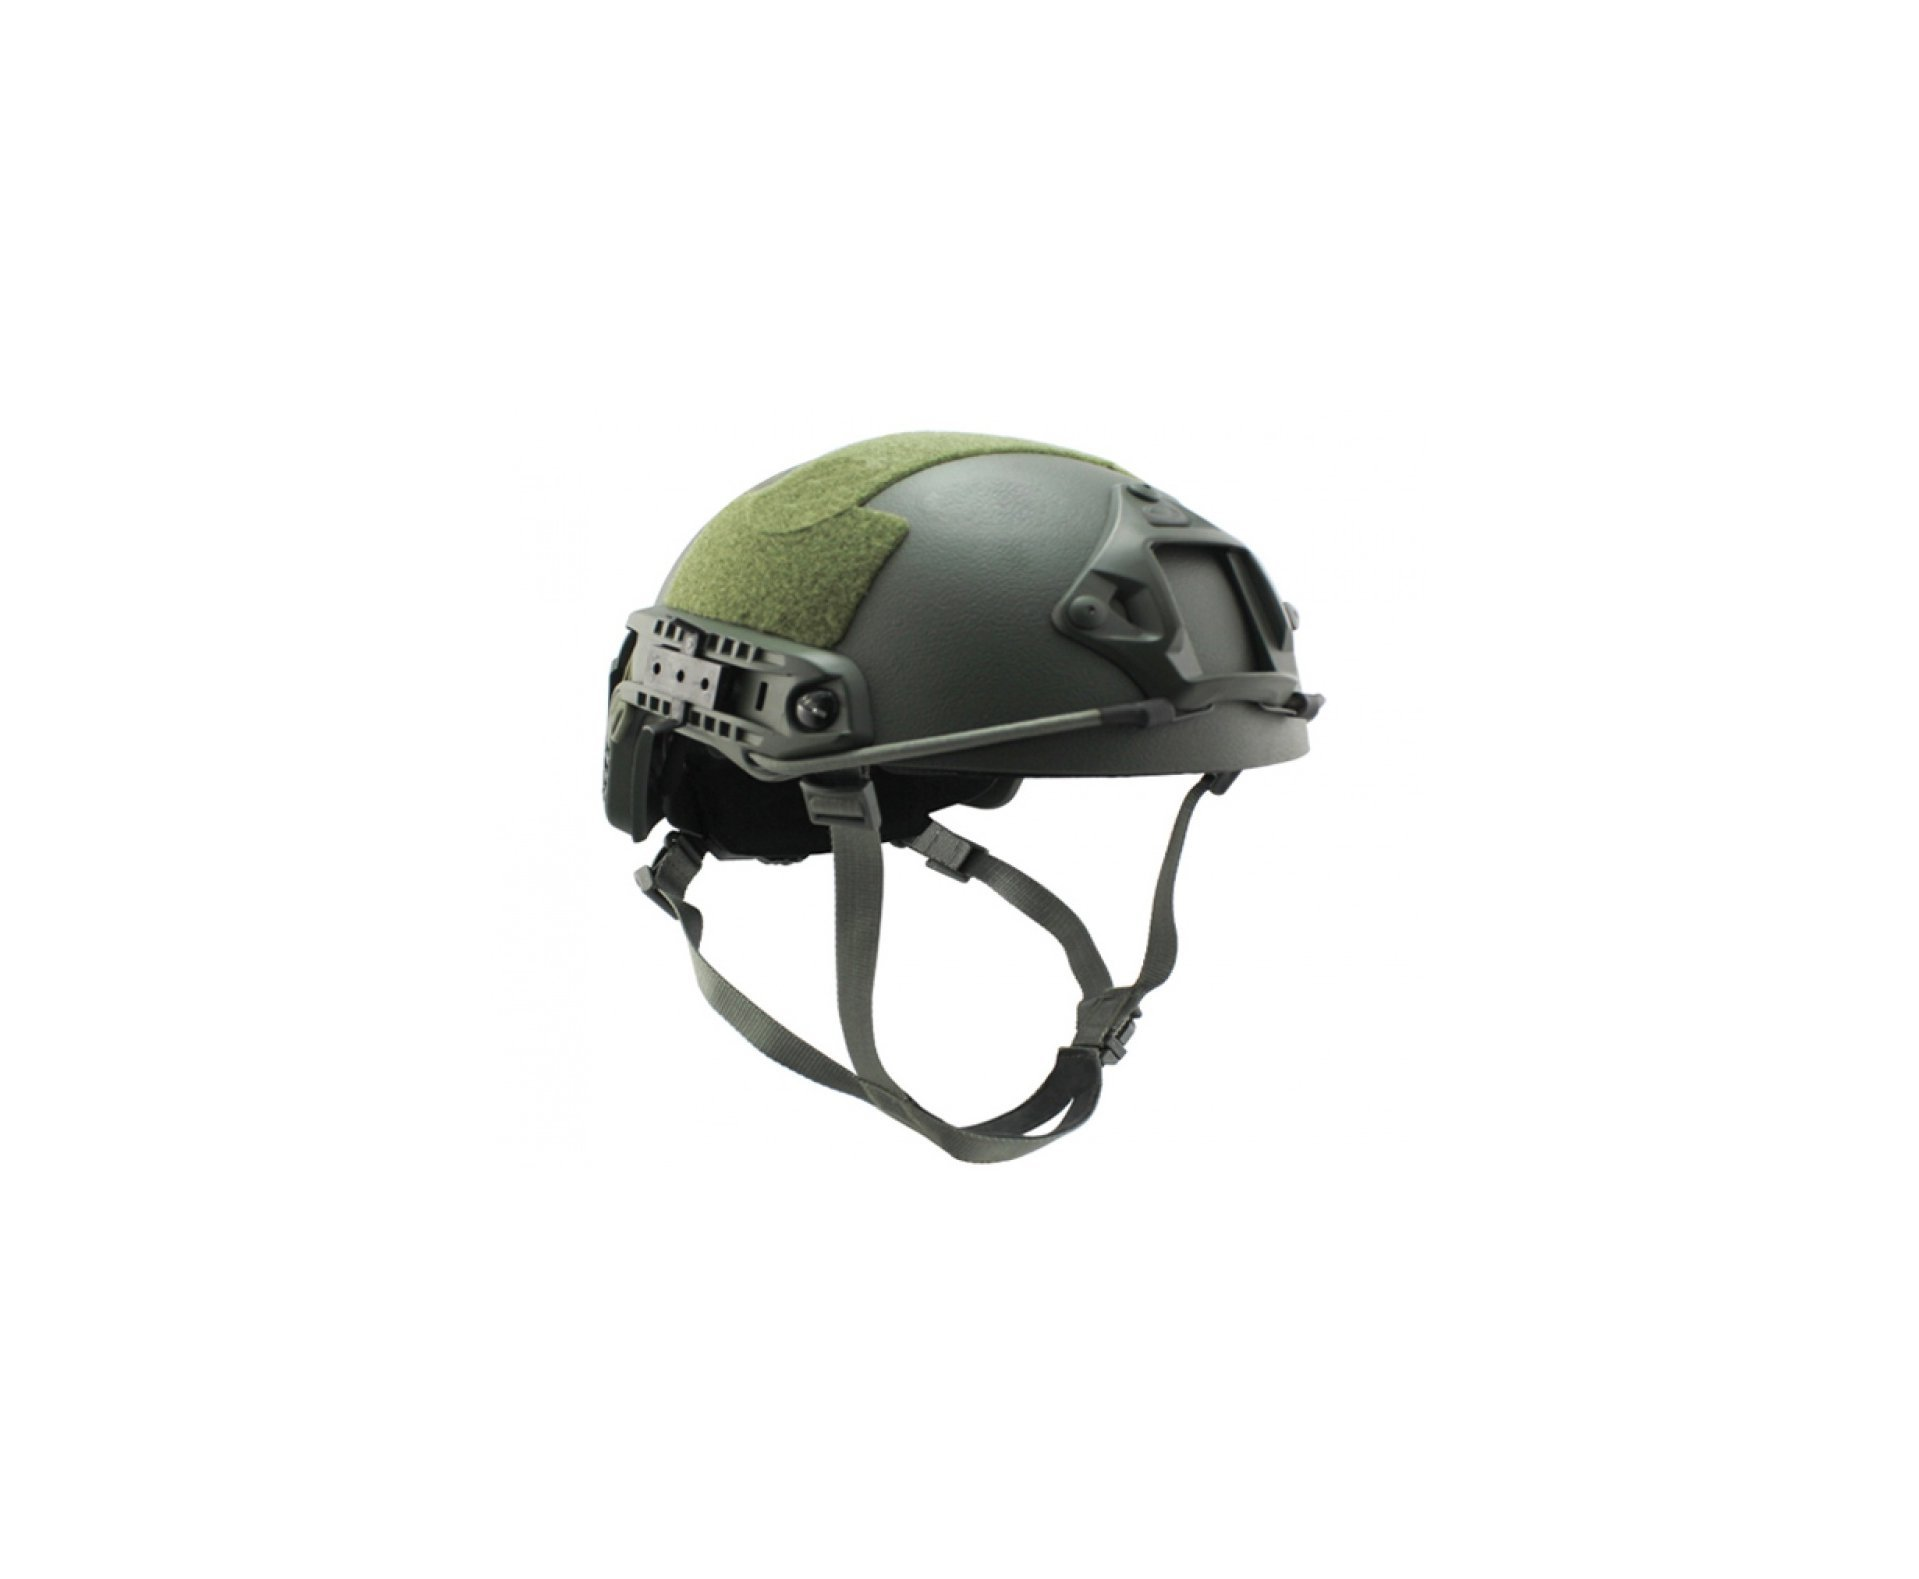 Capacete Tático Para Airsoft/paintball Mod Fast B Verde Oliva